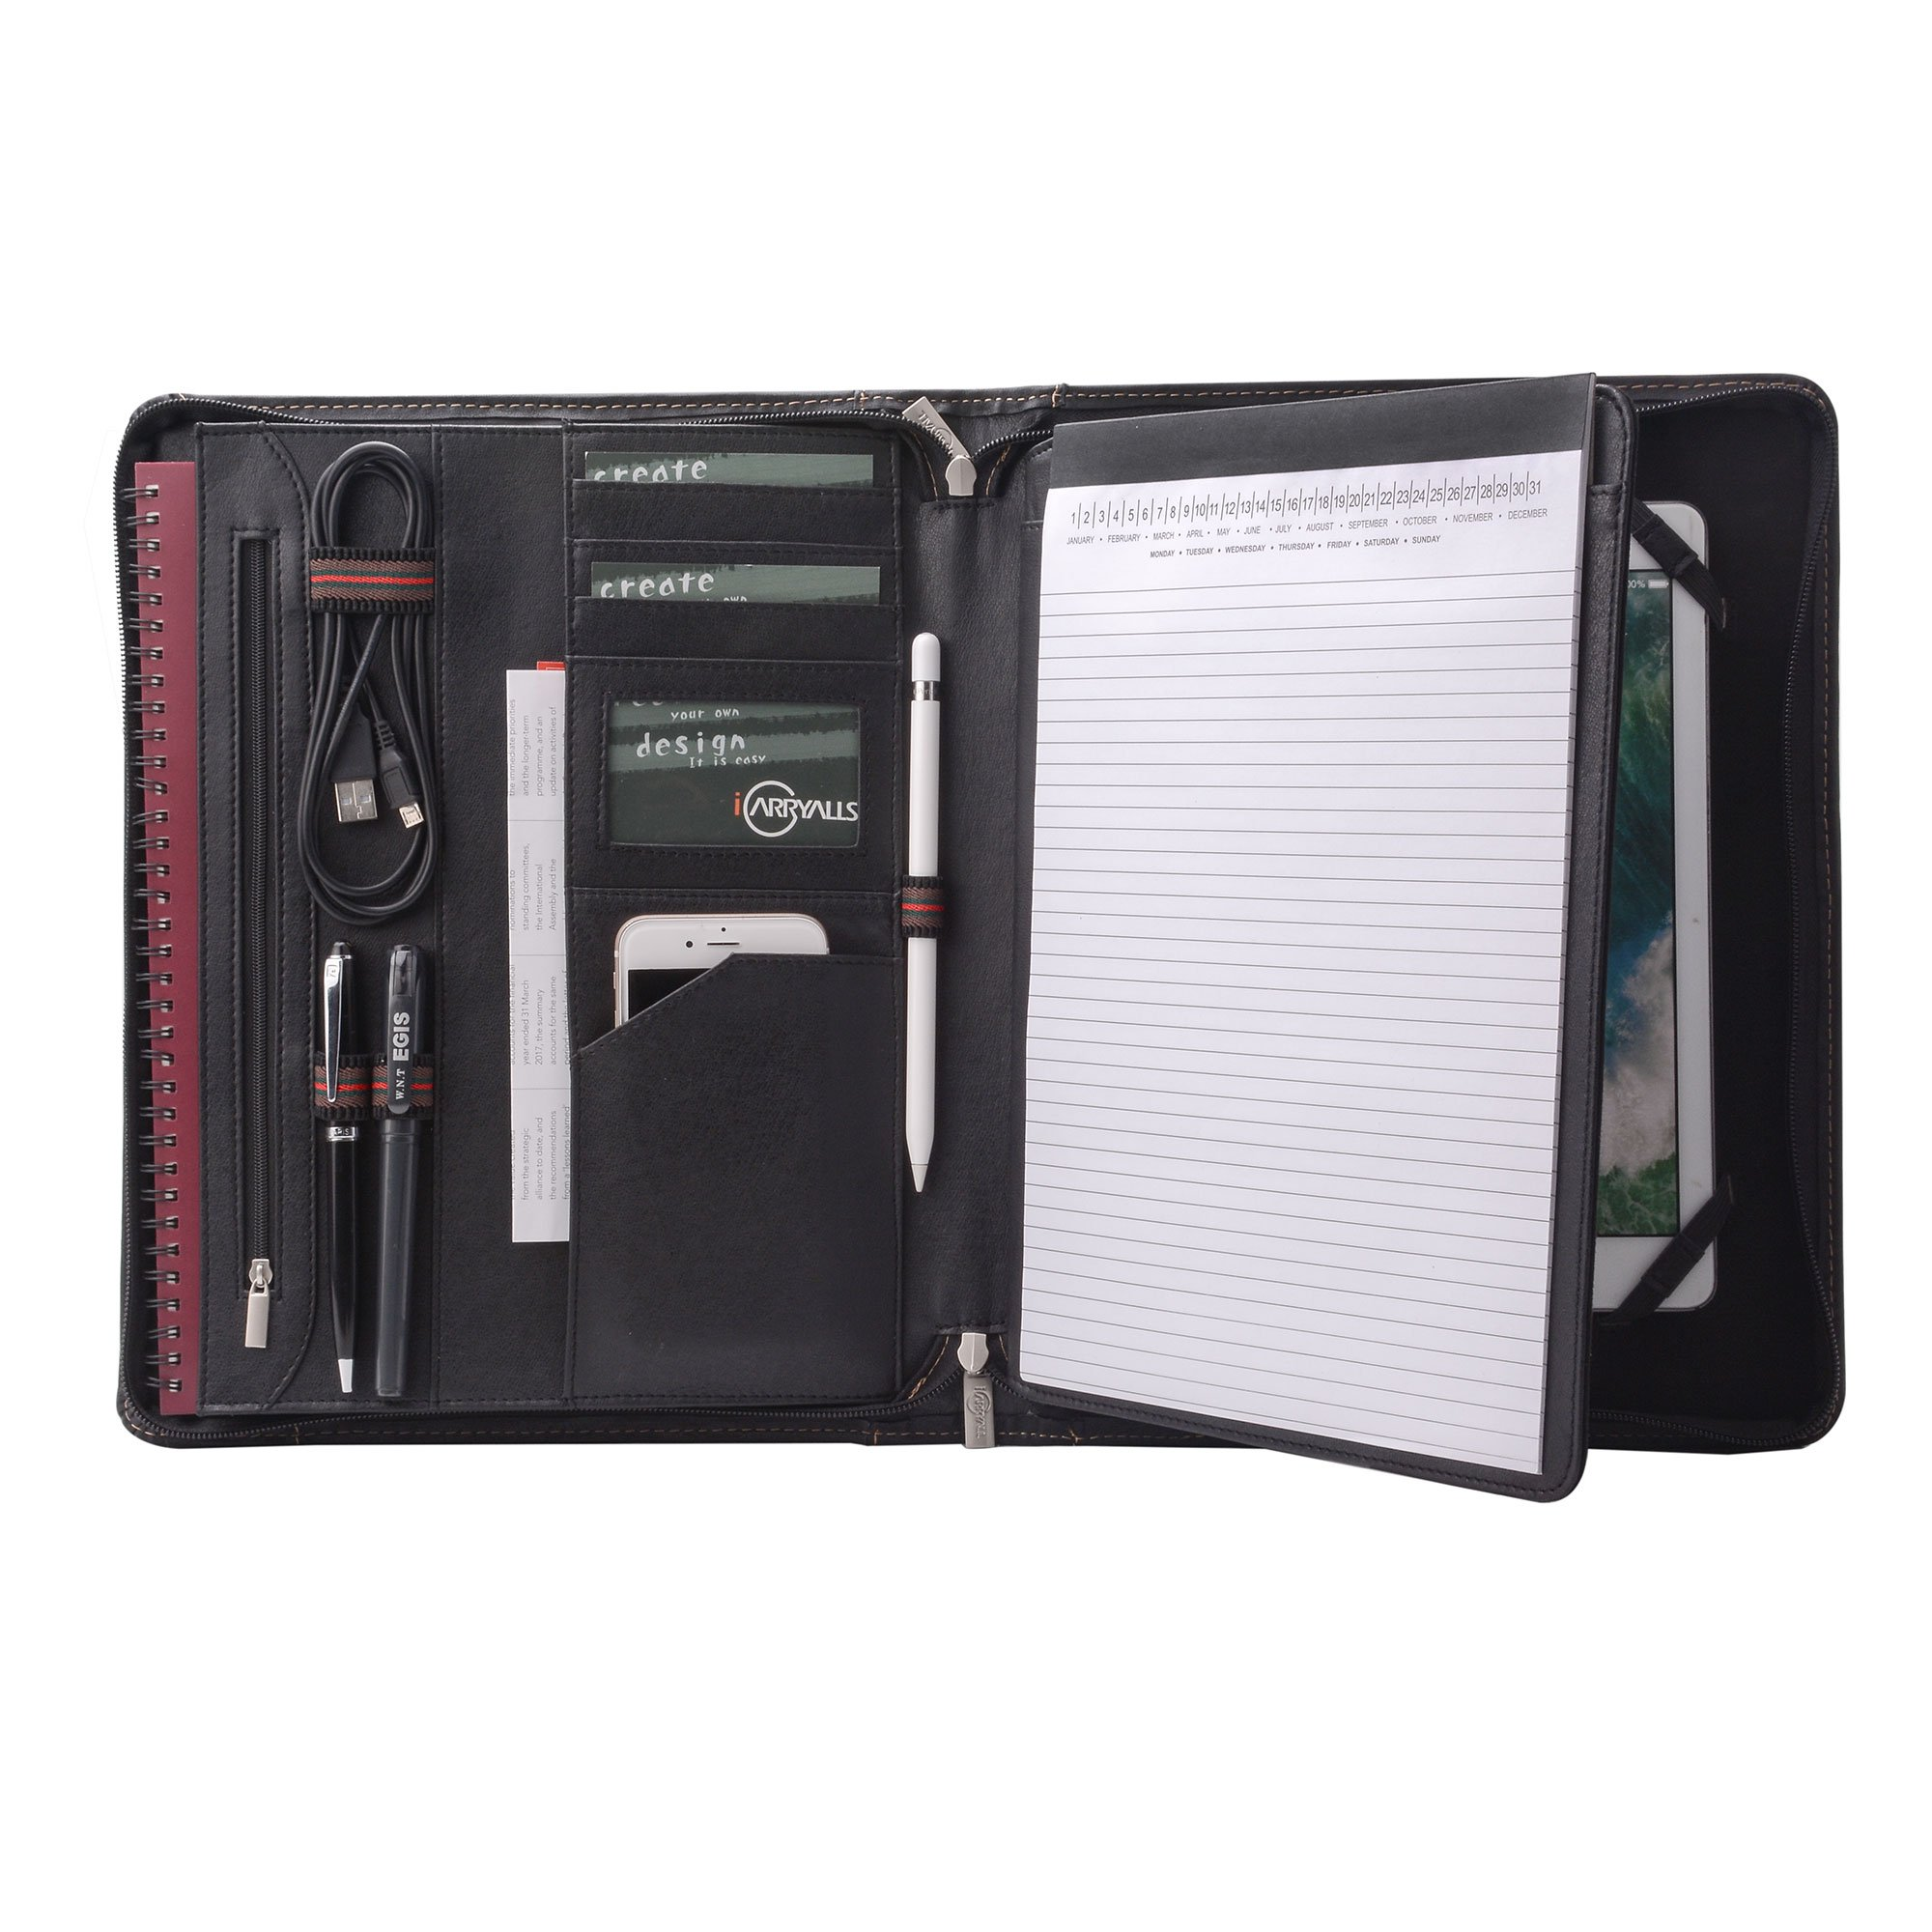 iCarryAlls Leather Padfolio with Zipper, Organizer Padfolio Case for 9.7 inch iPad Pro, A4 Portfolio for Notepad